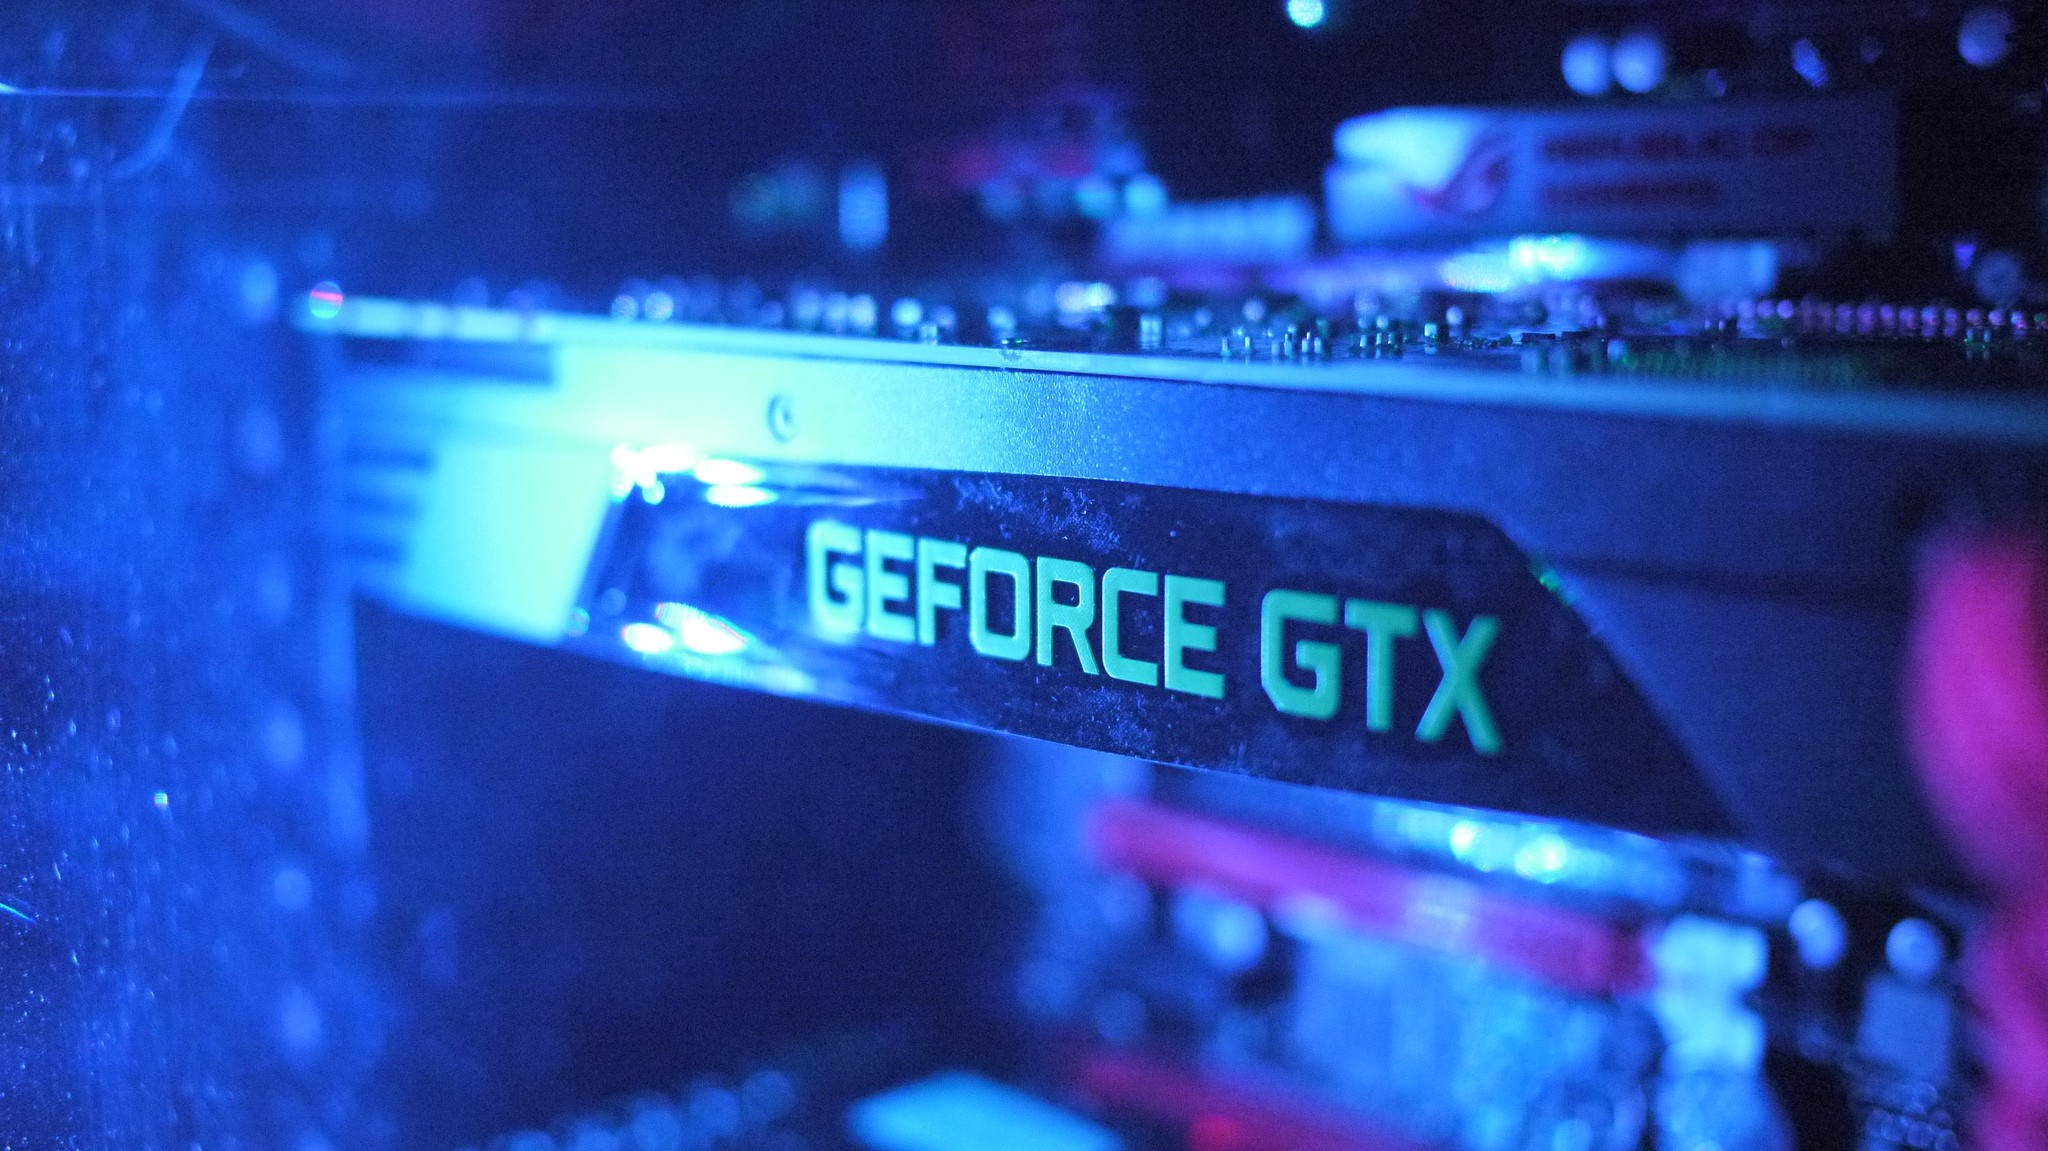 The PC Gaming is not dead, but is going to (updated)